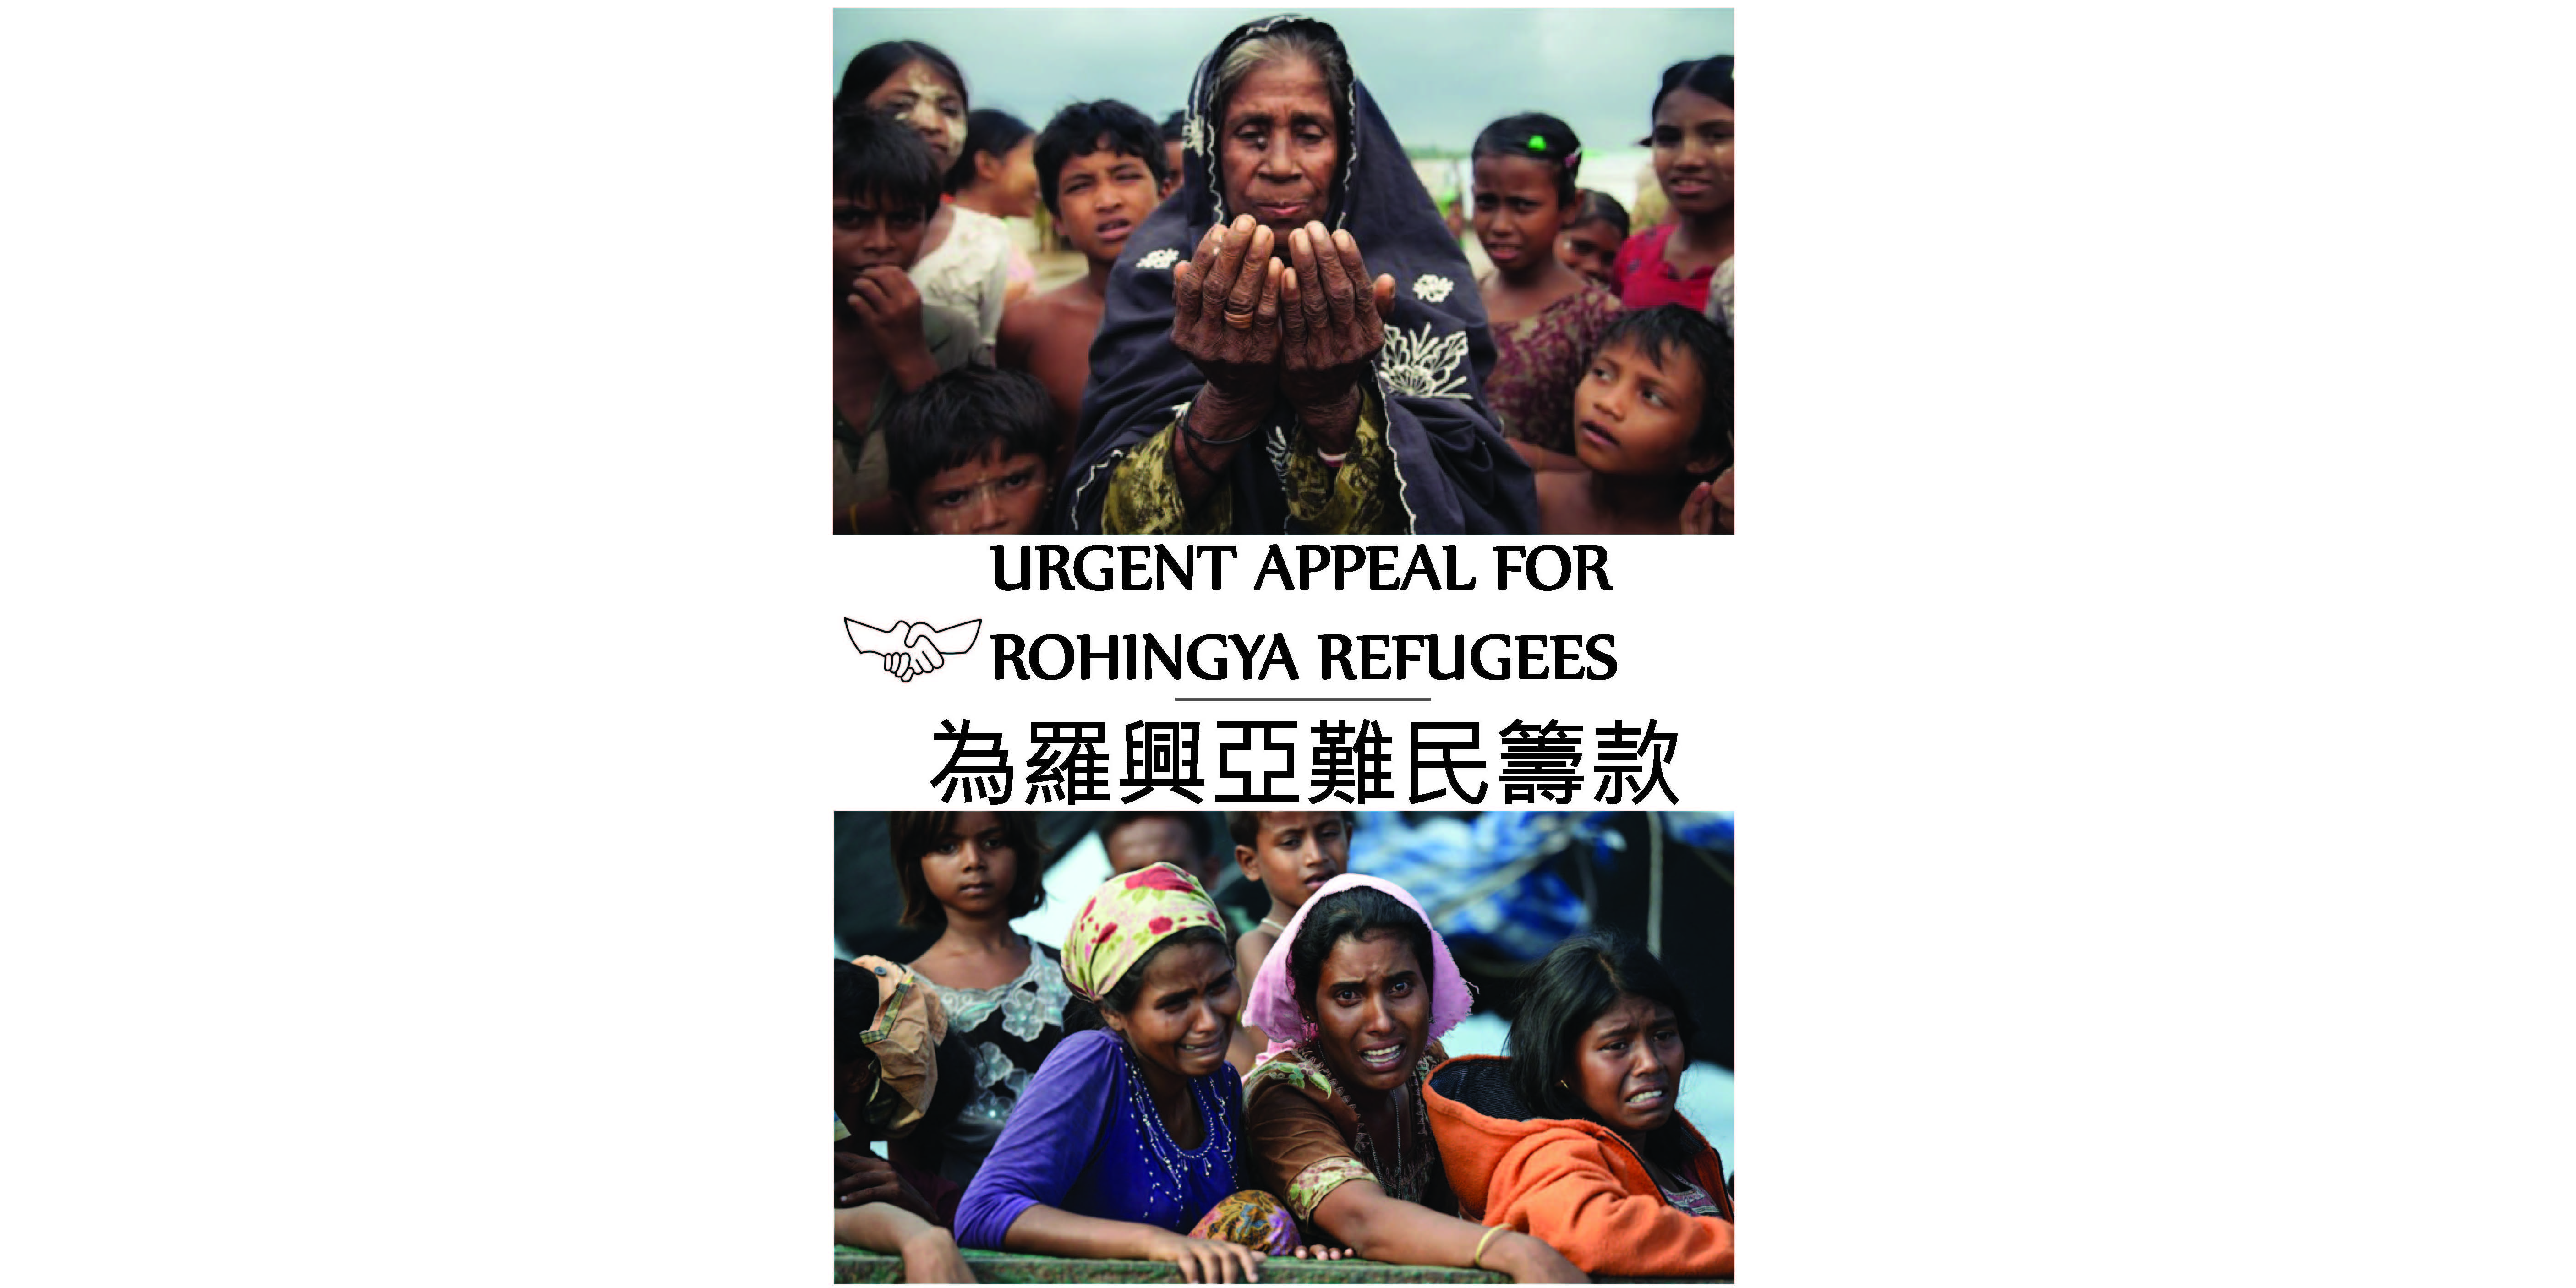 Appeal for Rohingya Refugees